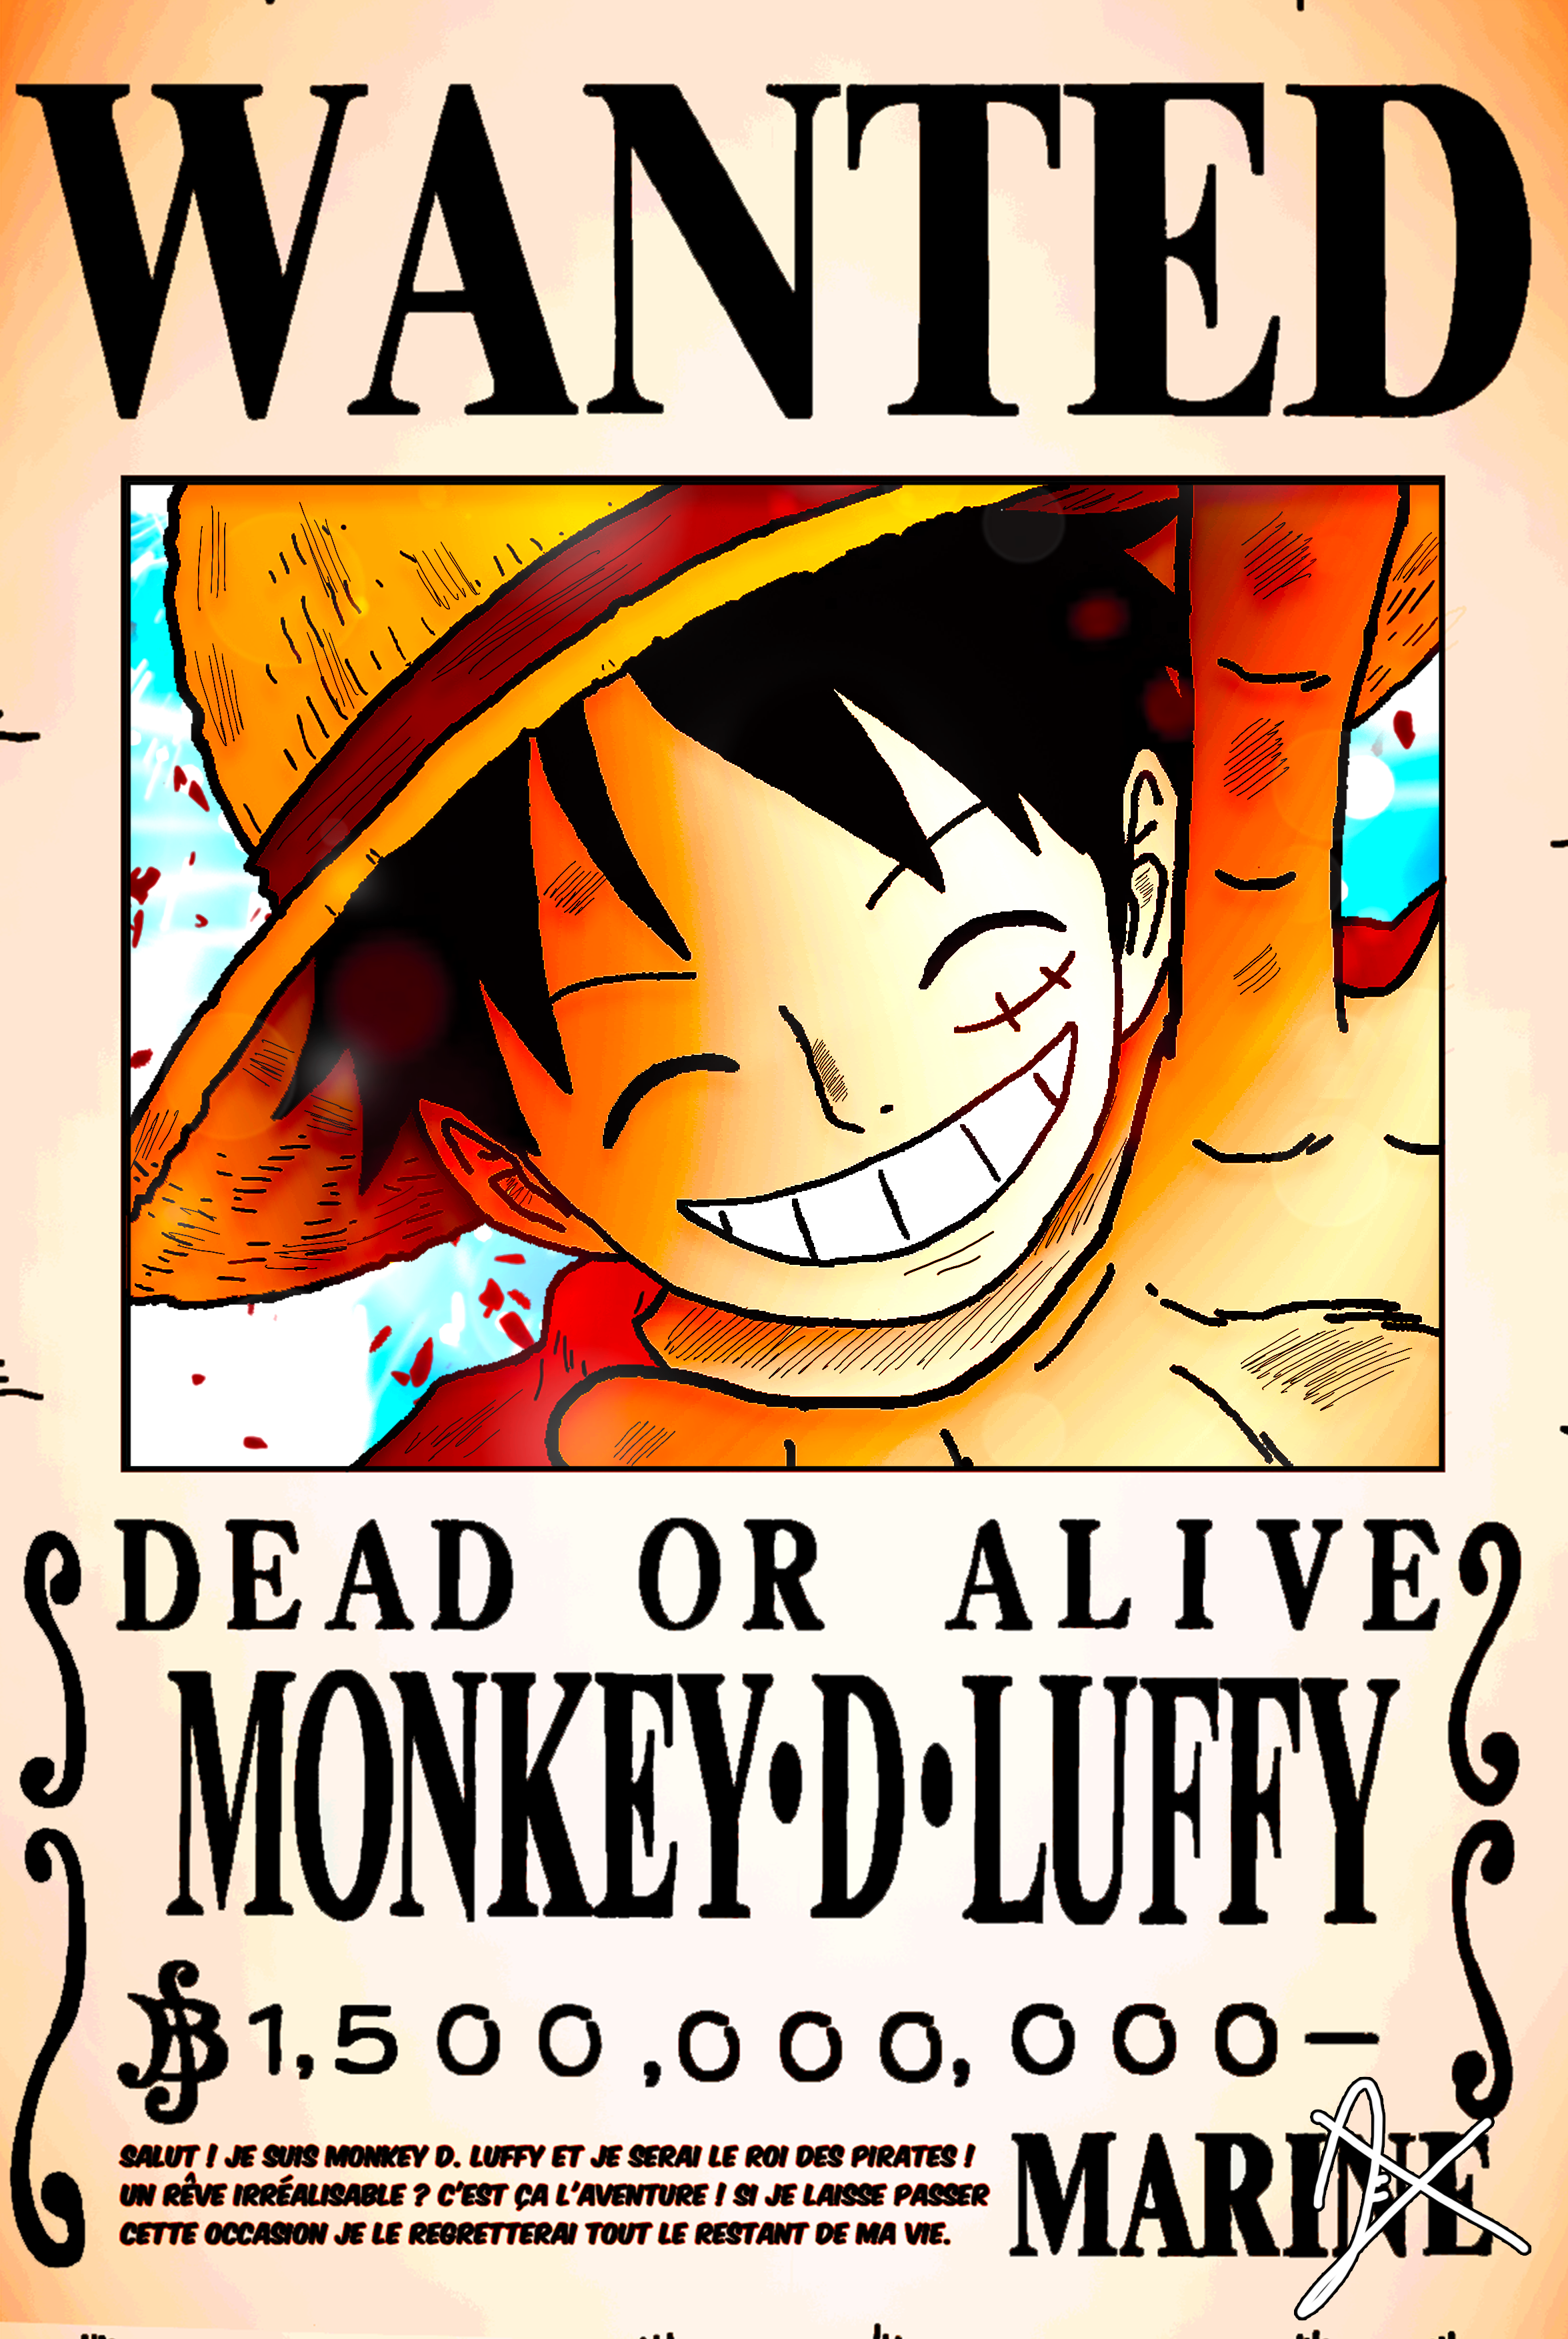 Wanted Poster Monkey D Luffy 1 5 Billion Berrys 2 By Axel0w On Deviantart